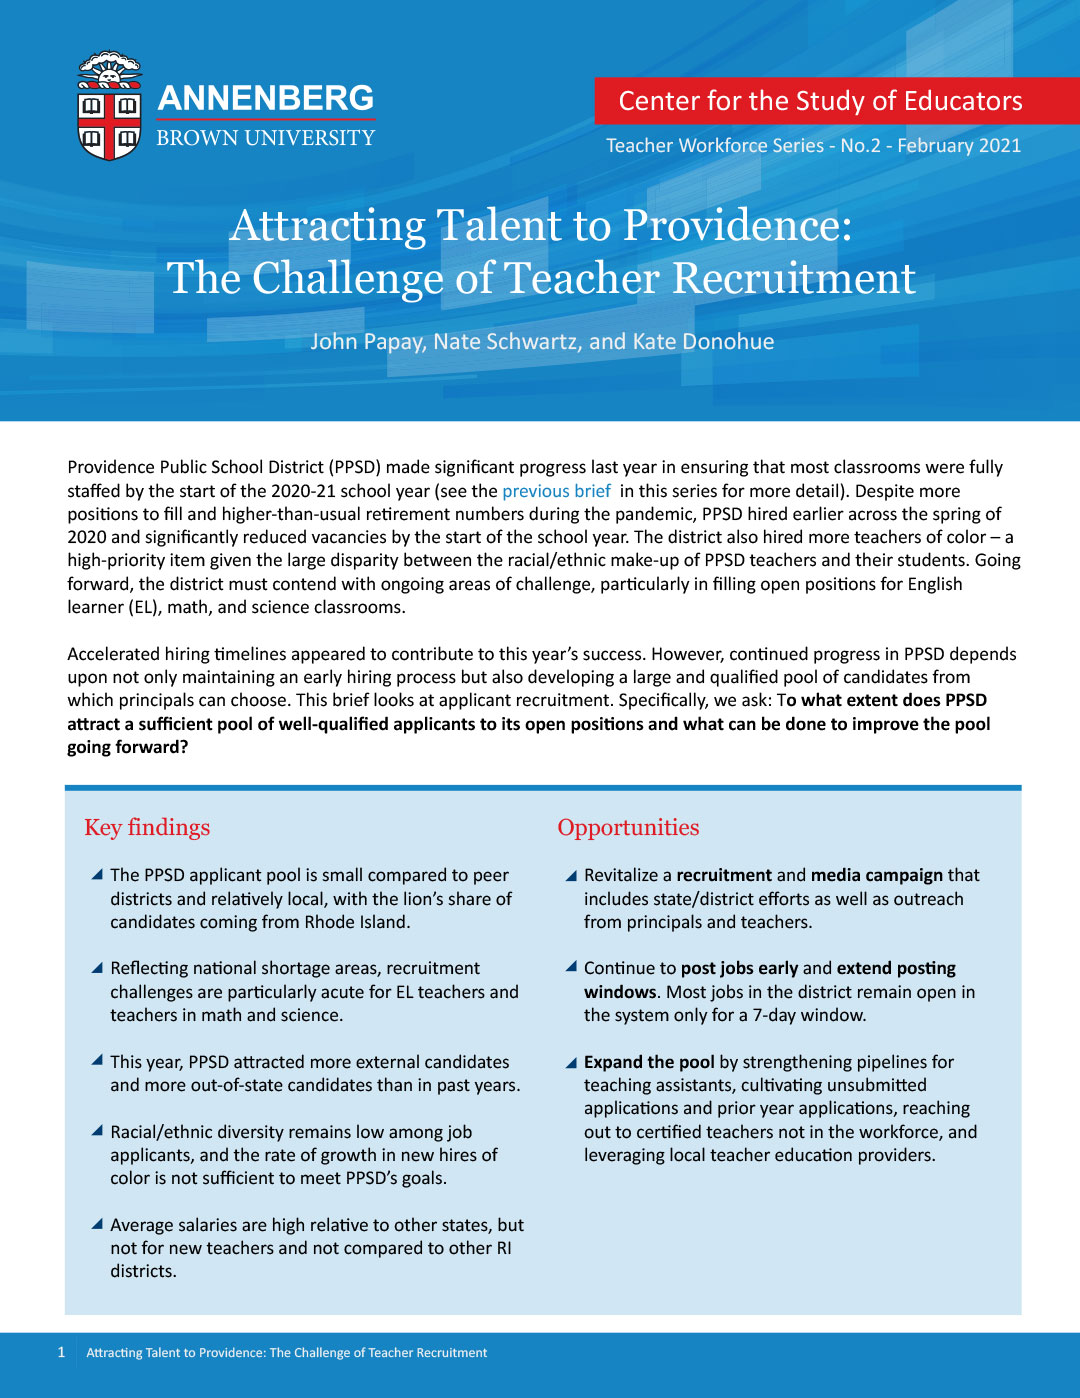 Attracting Talent to Providence: The Challenge of Teacher Recruitment